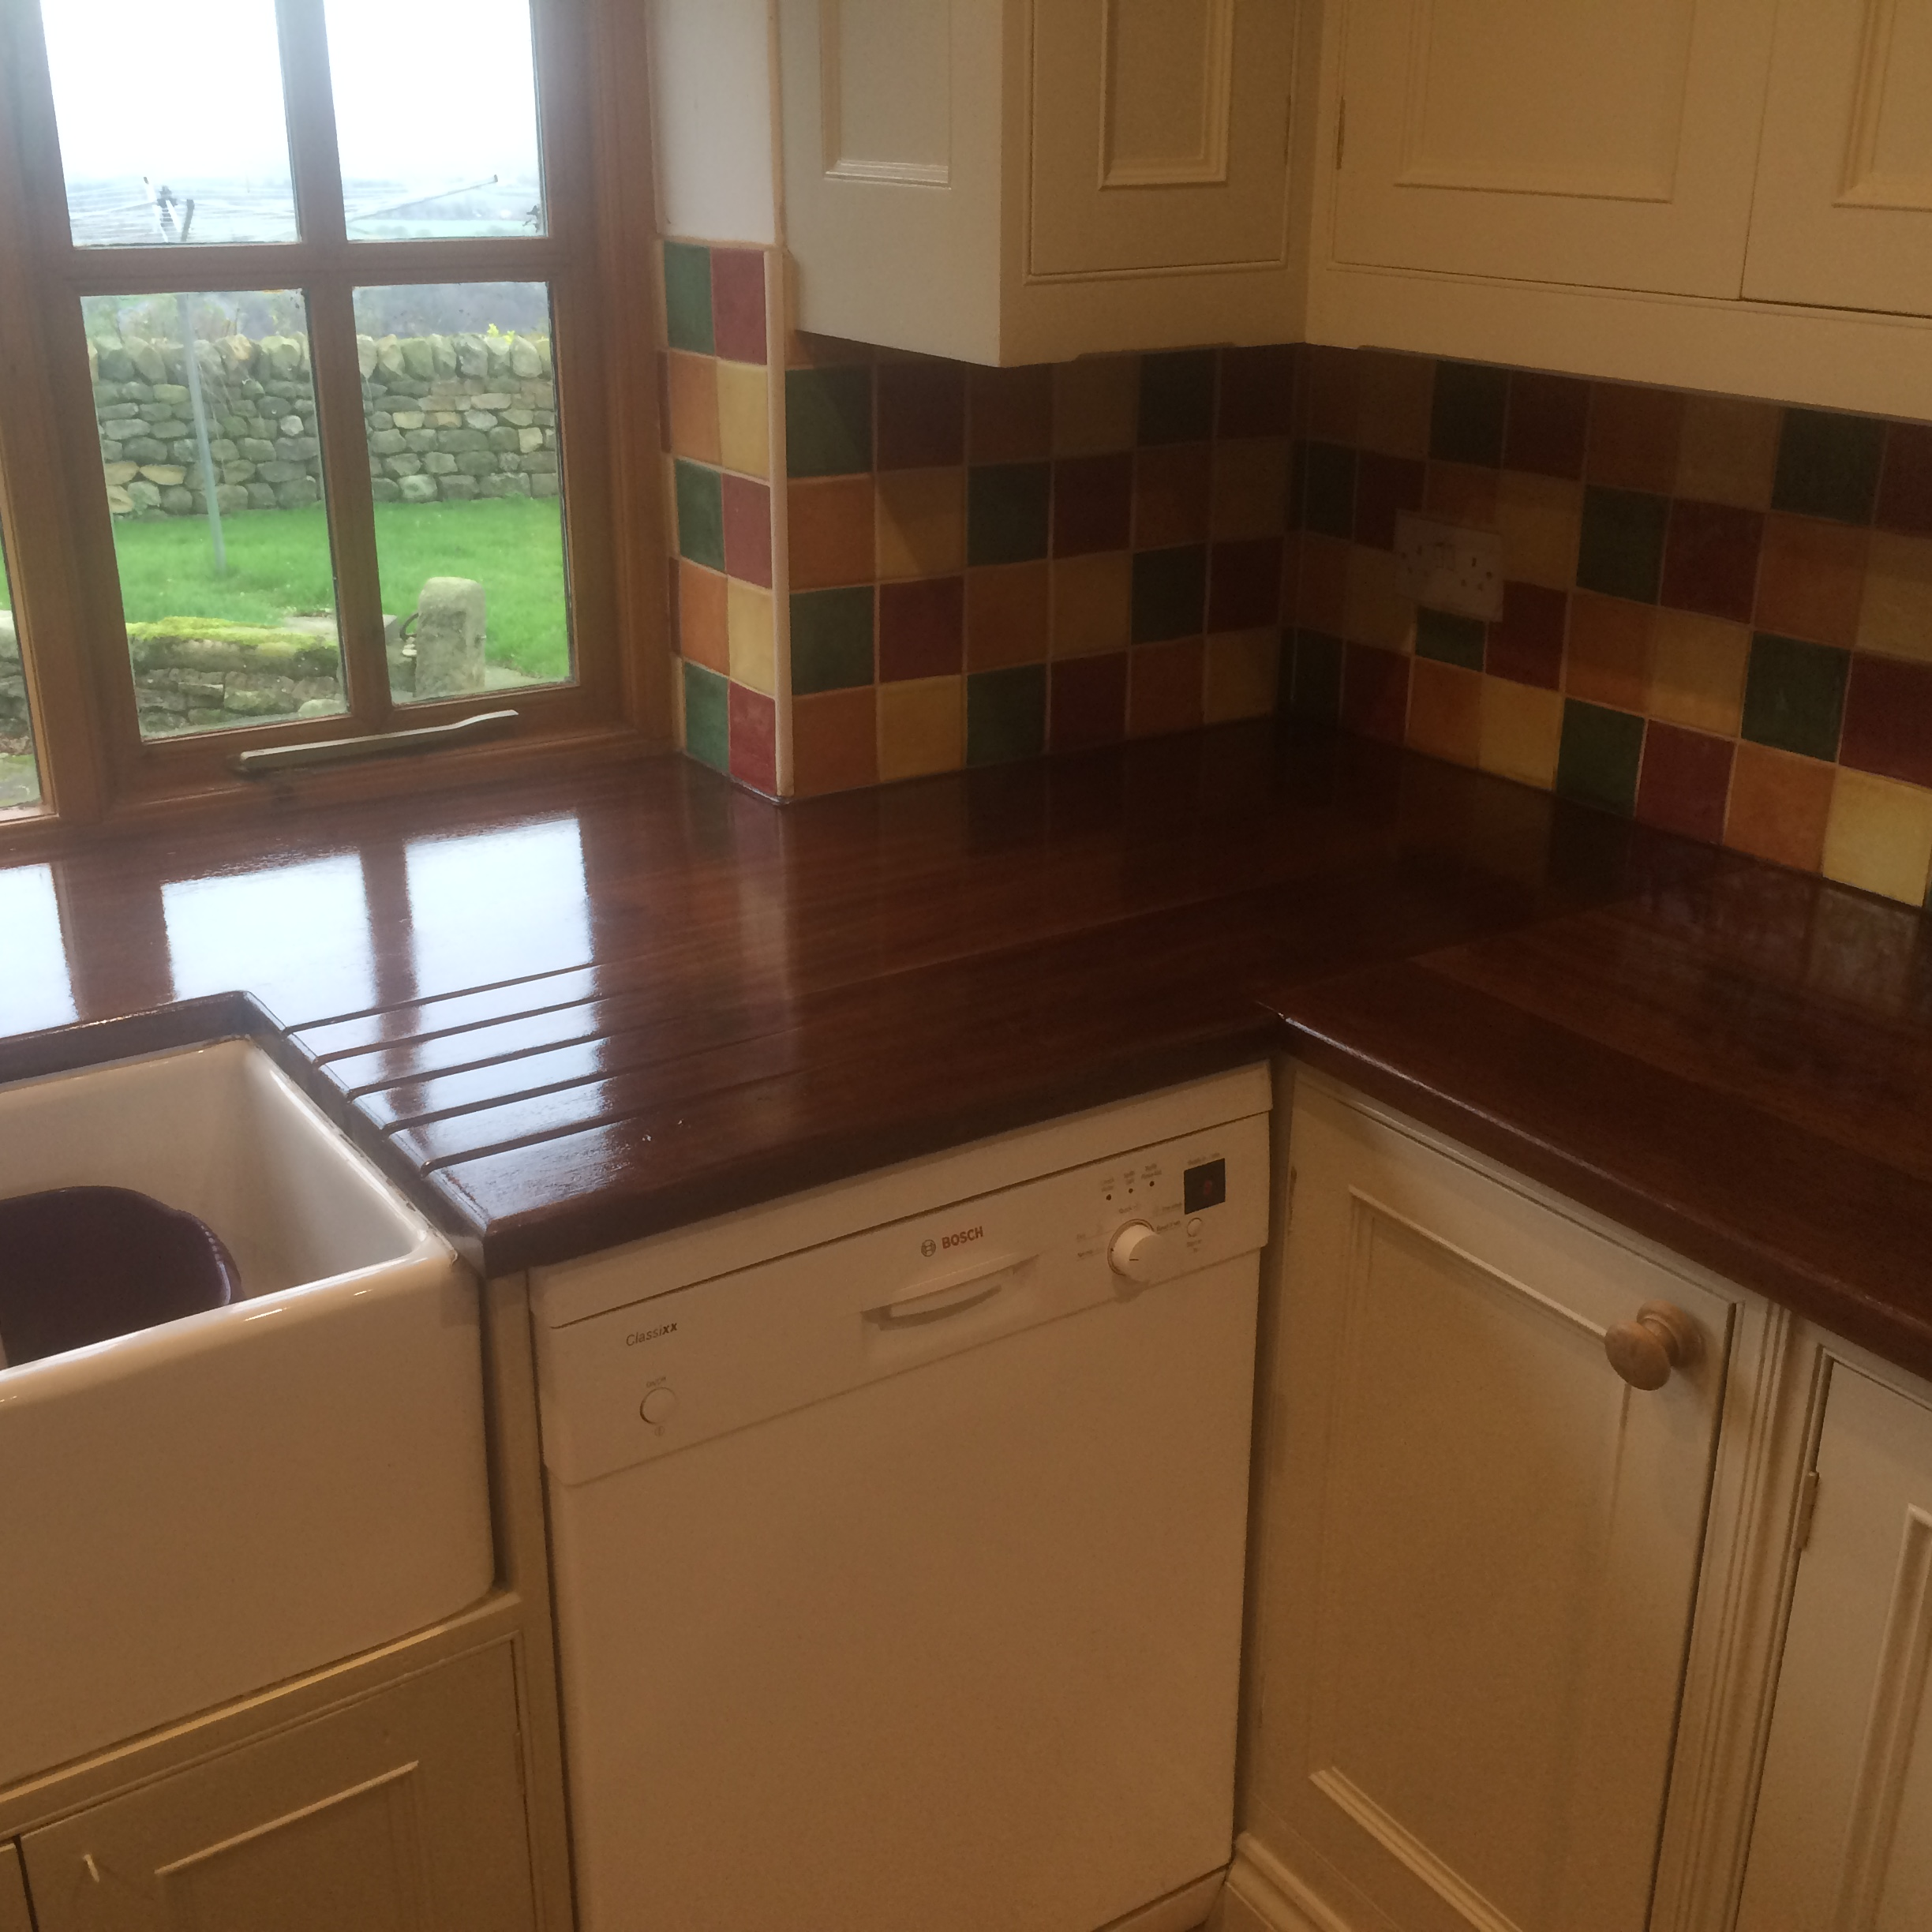 Kitchen Cupboard Painters Leicestershire Harborough Decorators High Quality Decorators Based In Market